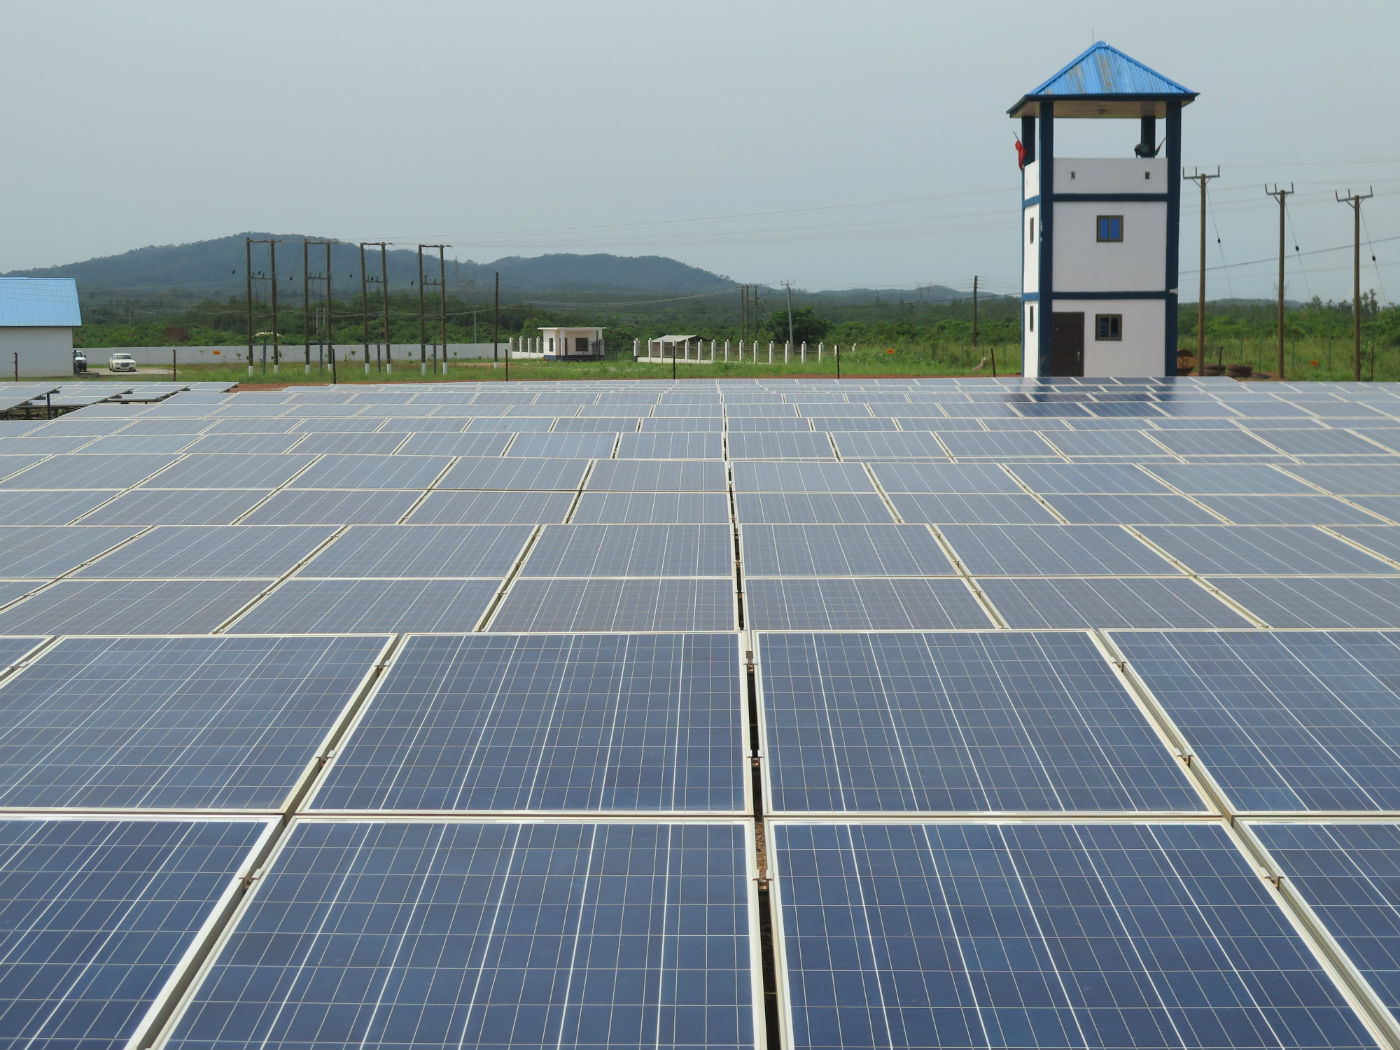 A 20MW pv plant in Ghana developed by BXC. Credit: Tom Kenning